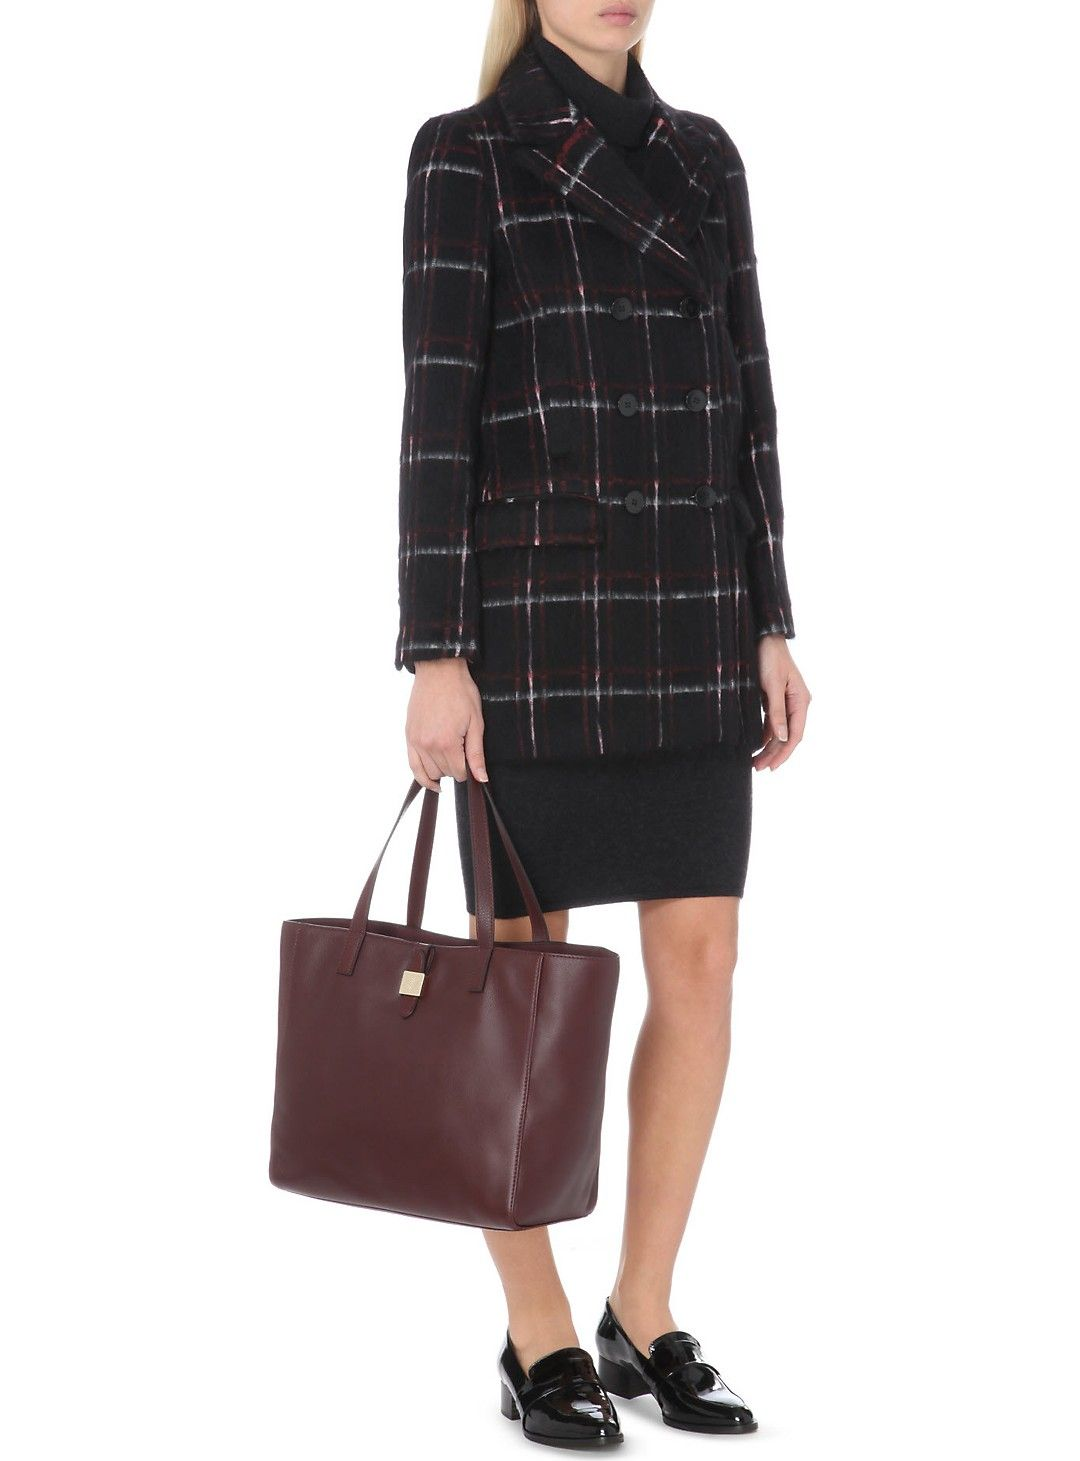 75698db2e99 Designer Bags · MULBERRY - Tessie tote   Selfridges.com Mulberry Tree,  Oxblood, Vintage Inspired,